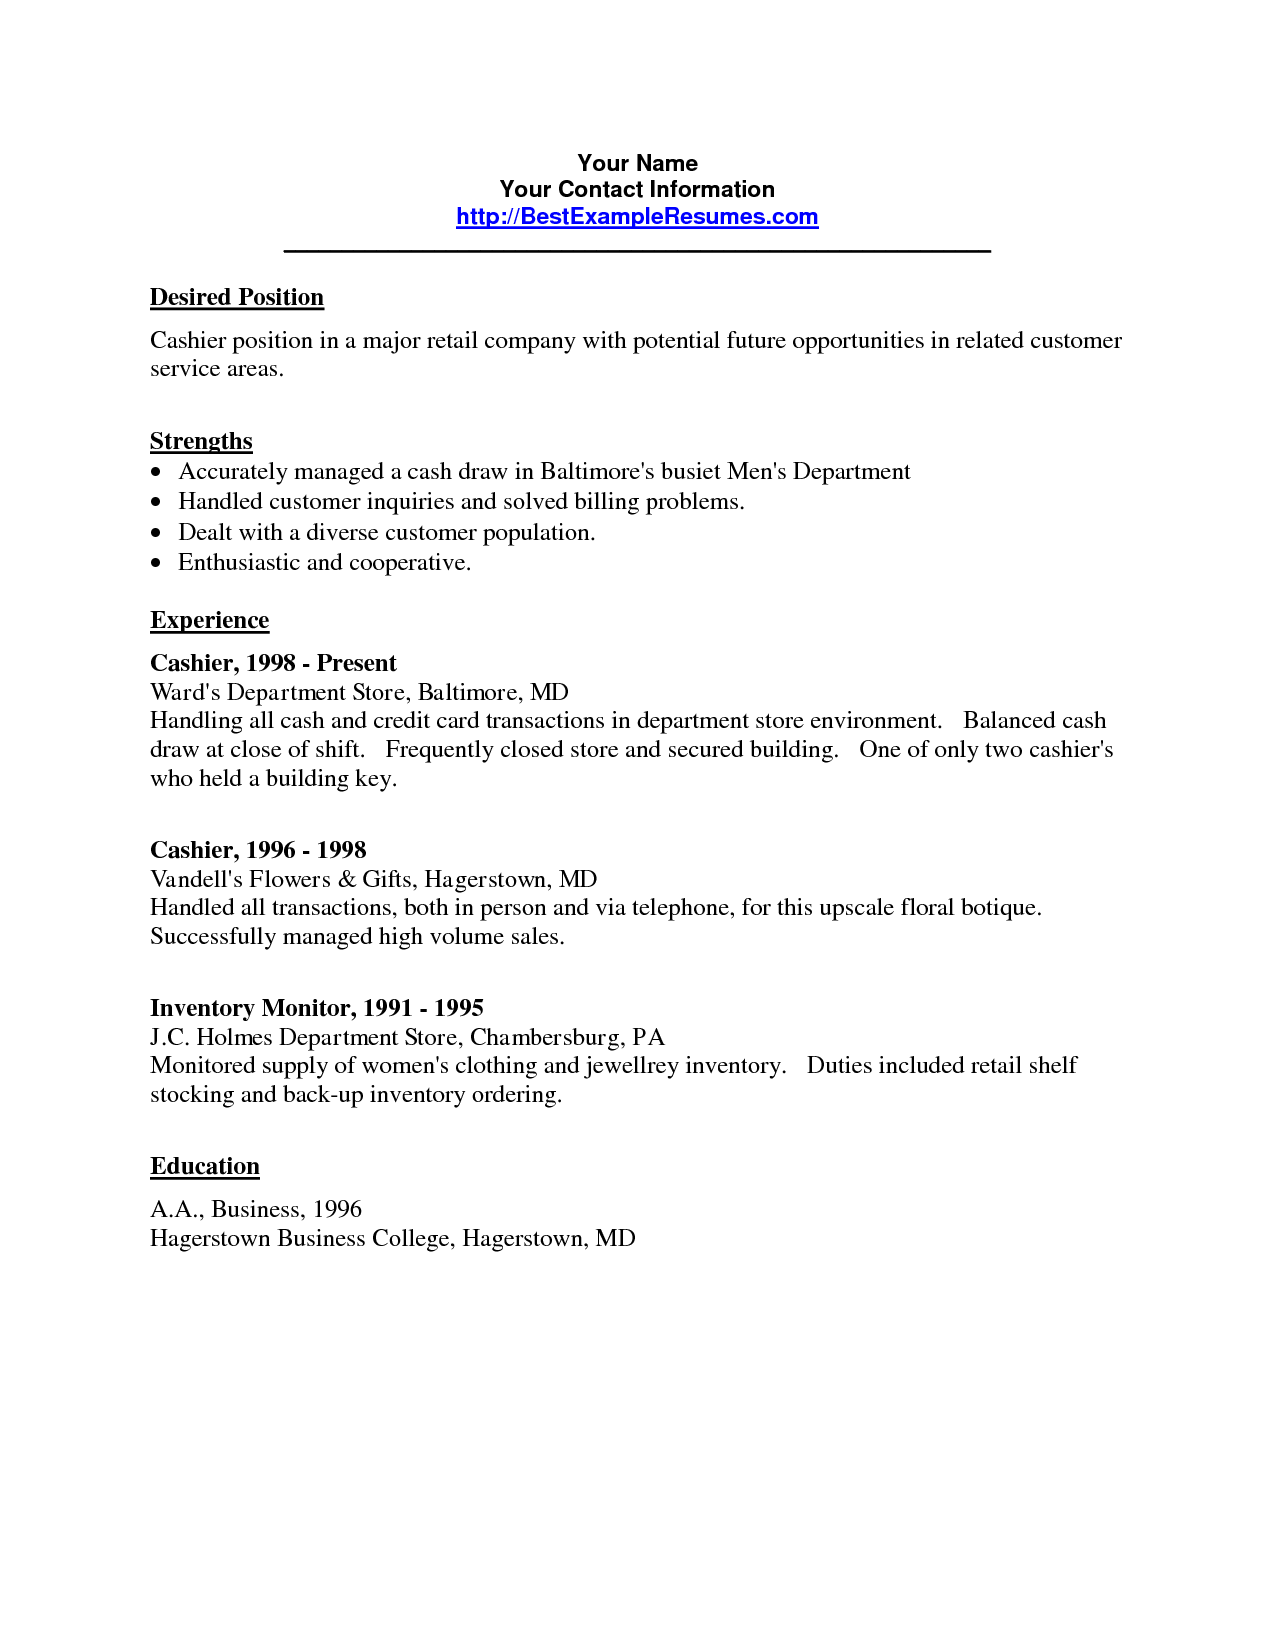 Job Skills Resume Job Resume Sample Cashier Examples For Application Impressive